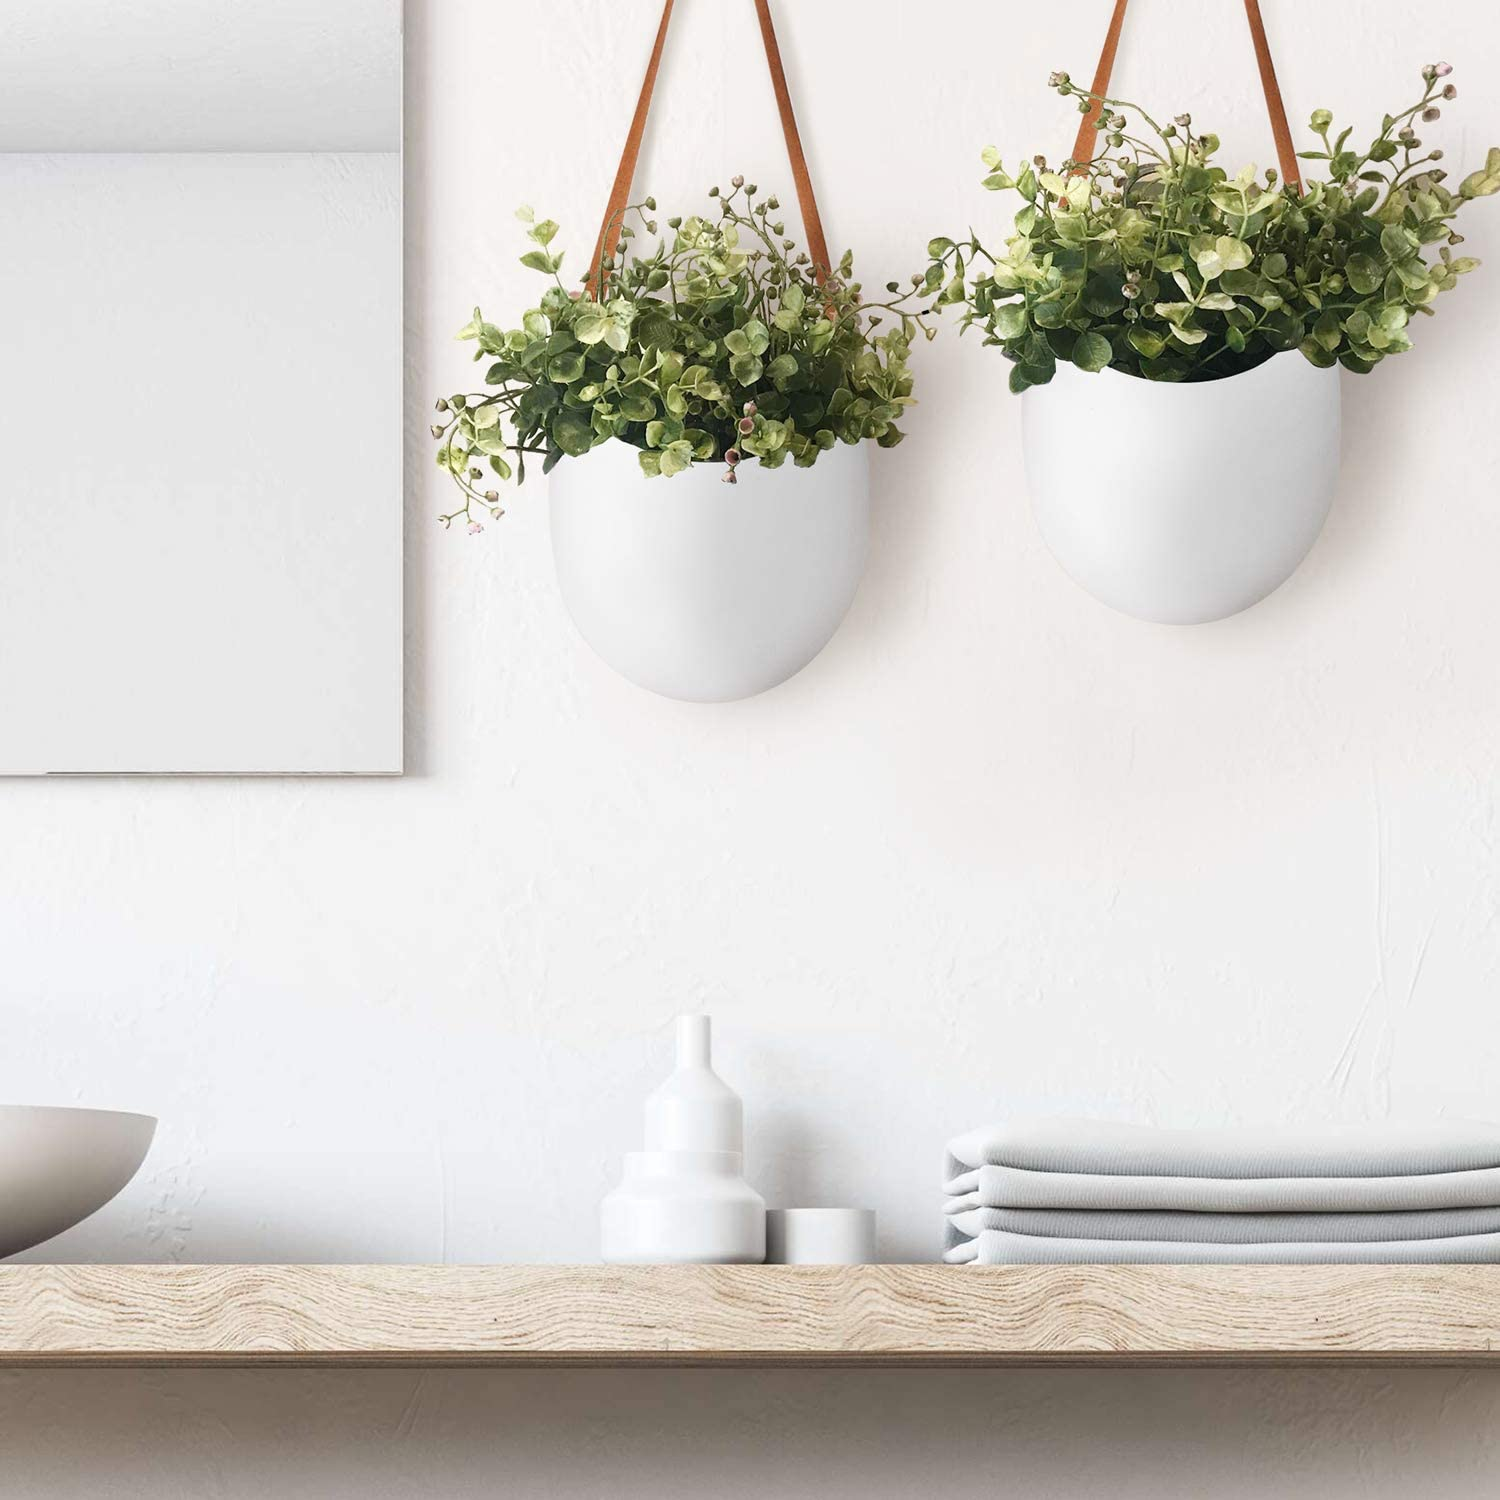 Best Planters To Hang Plants From Your Bathroom Wall